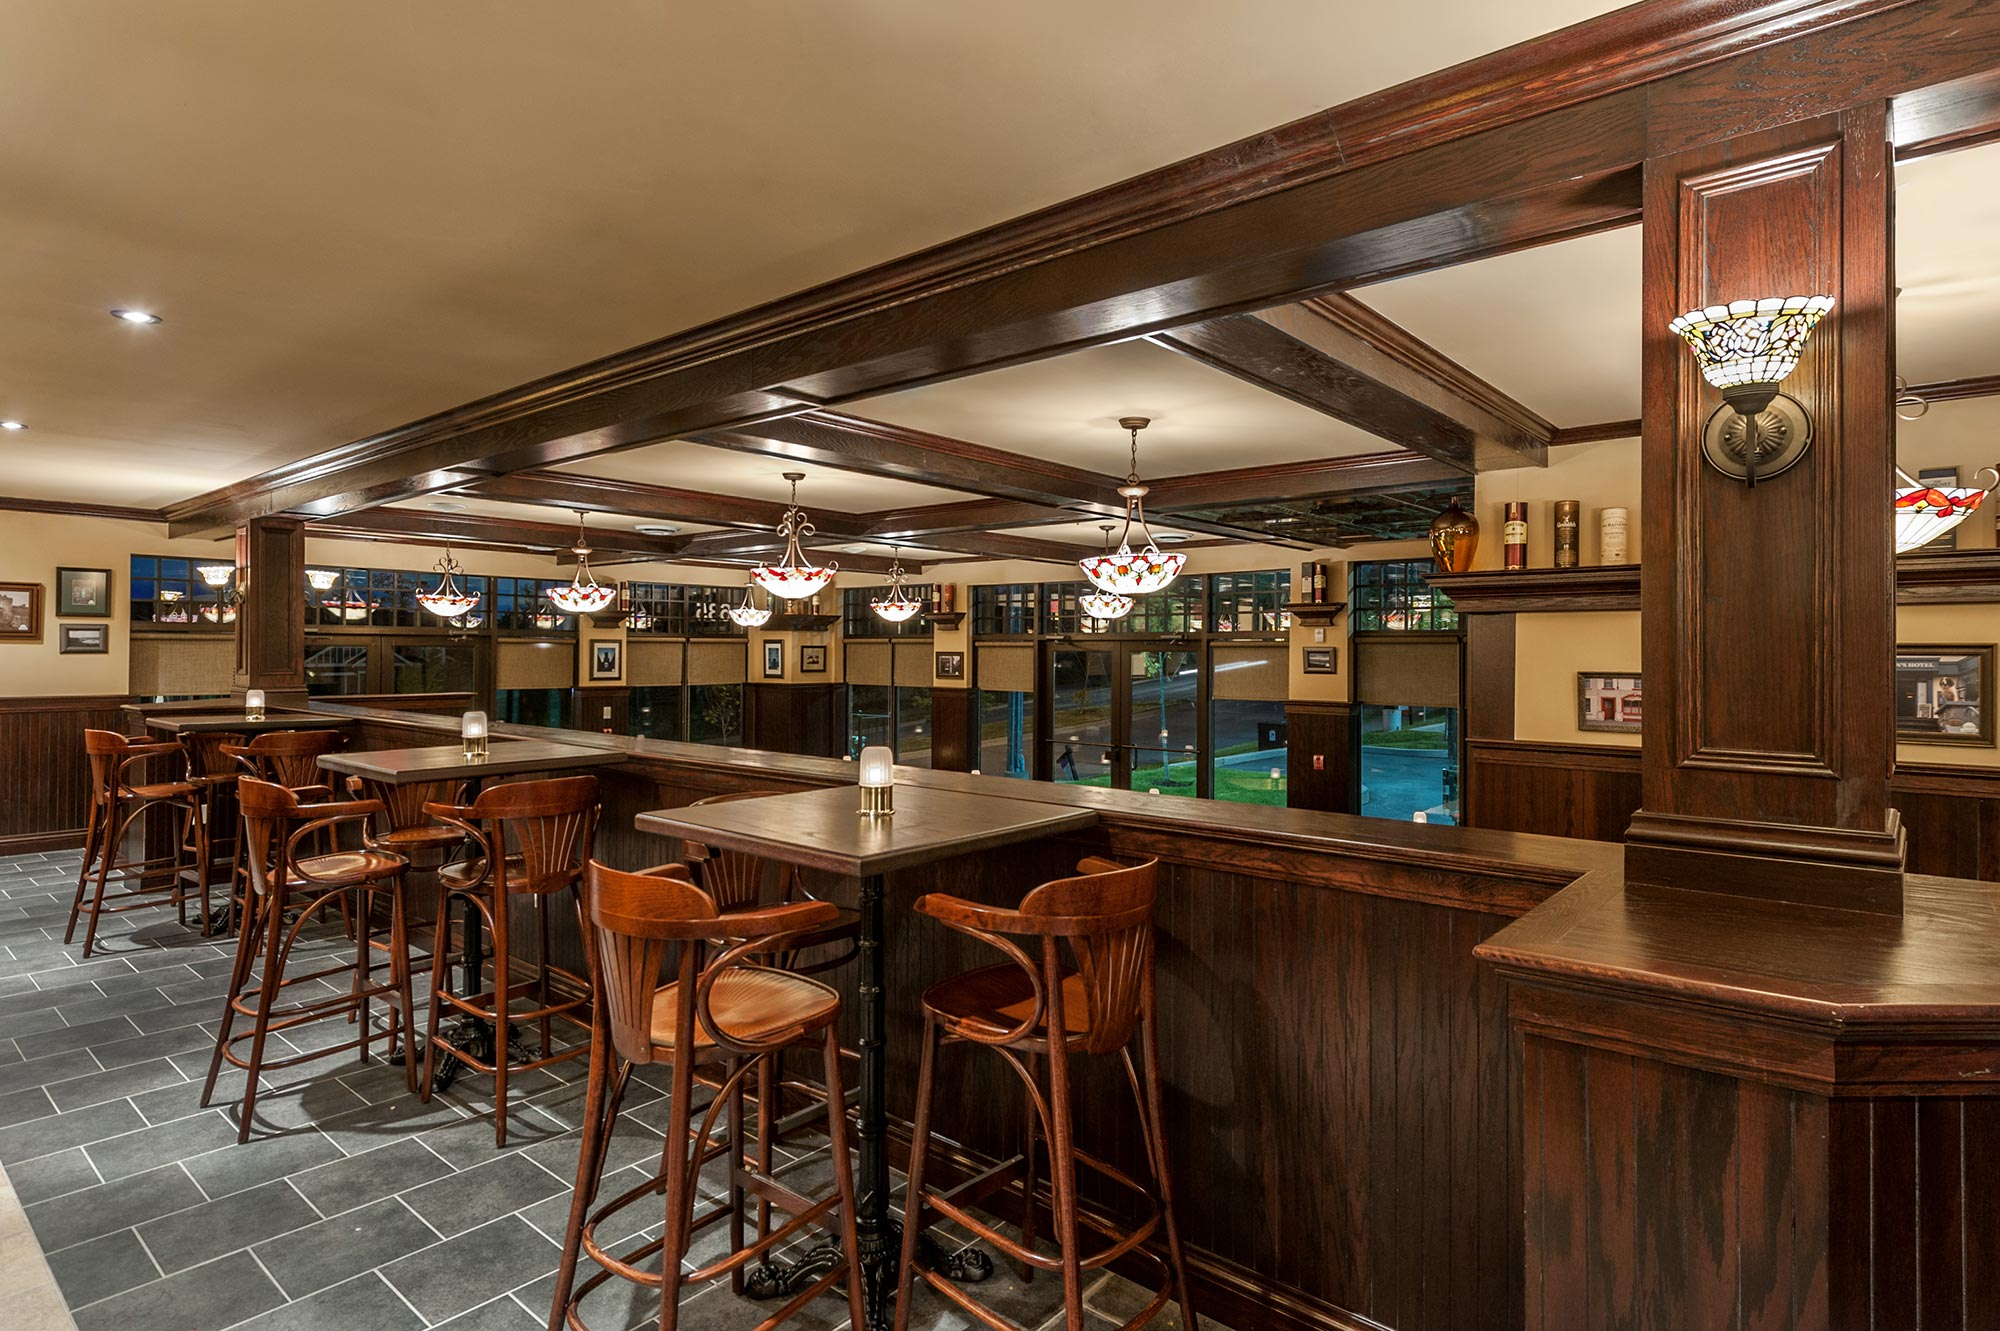 interior-design-restaurant-irish-pub-bar.jpg